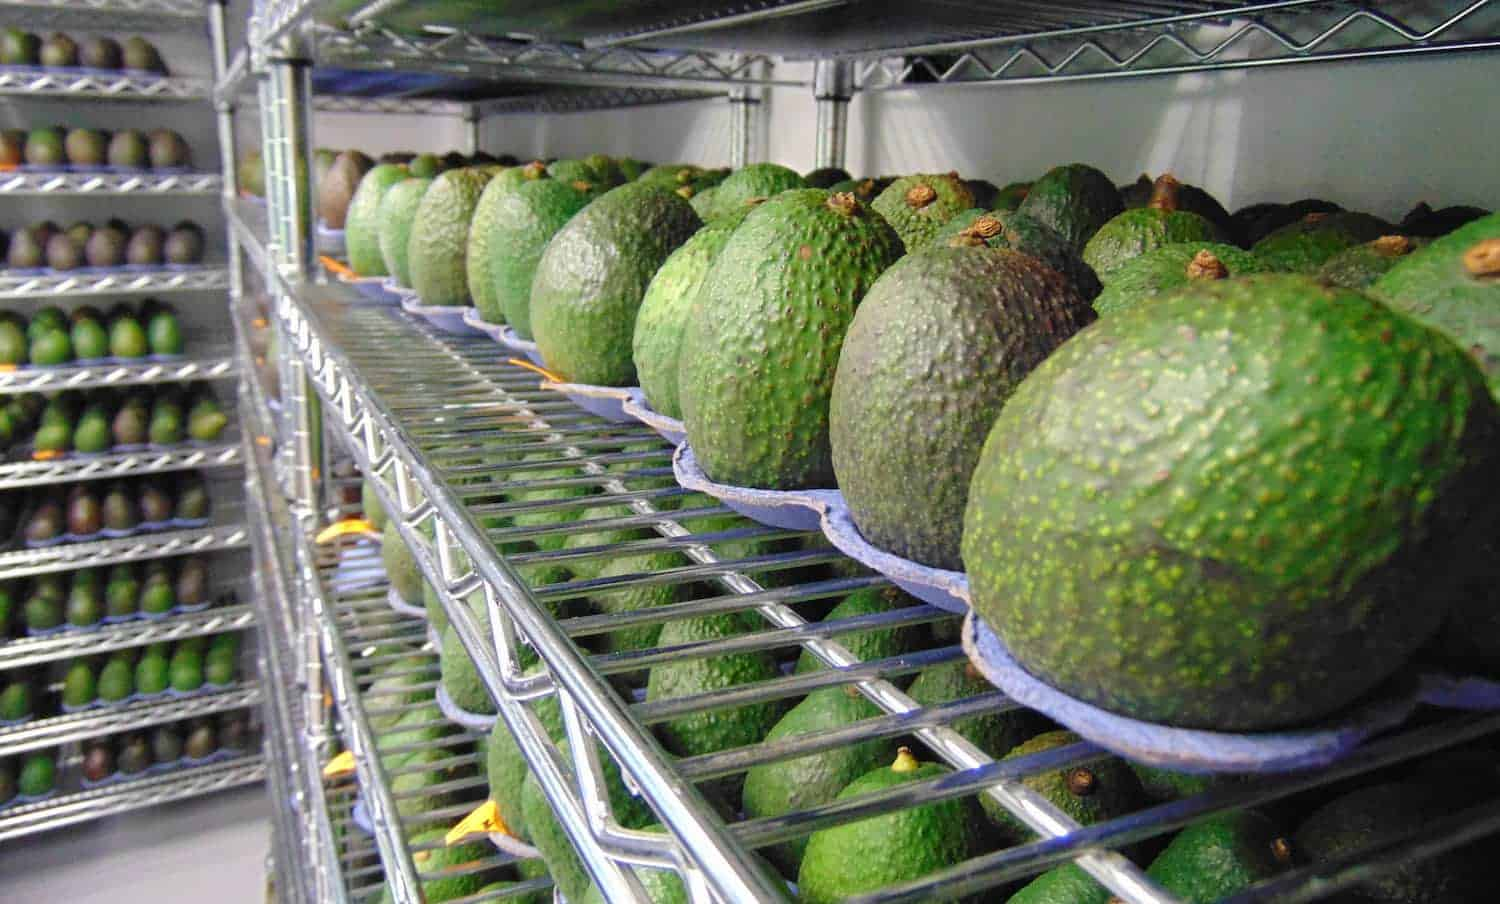 While stores and retailers waste 43 billion pounds of food each year, Costco joins with Apeel Sciences to sell longer-lasting avocados.